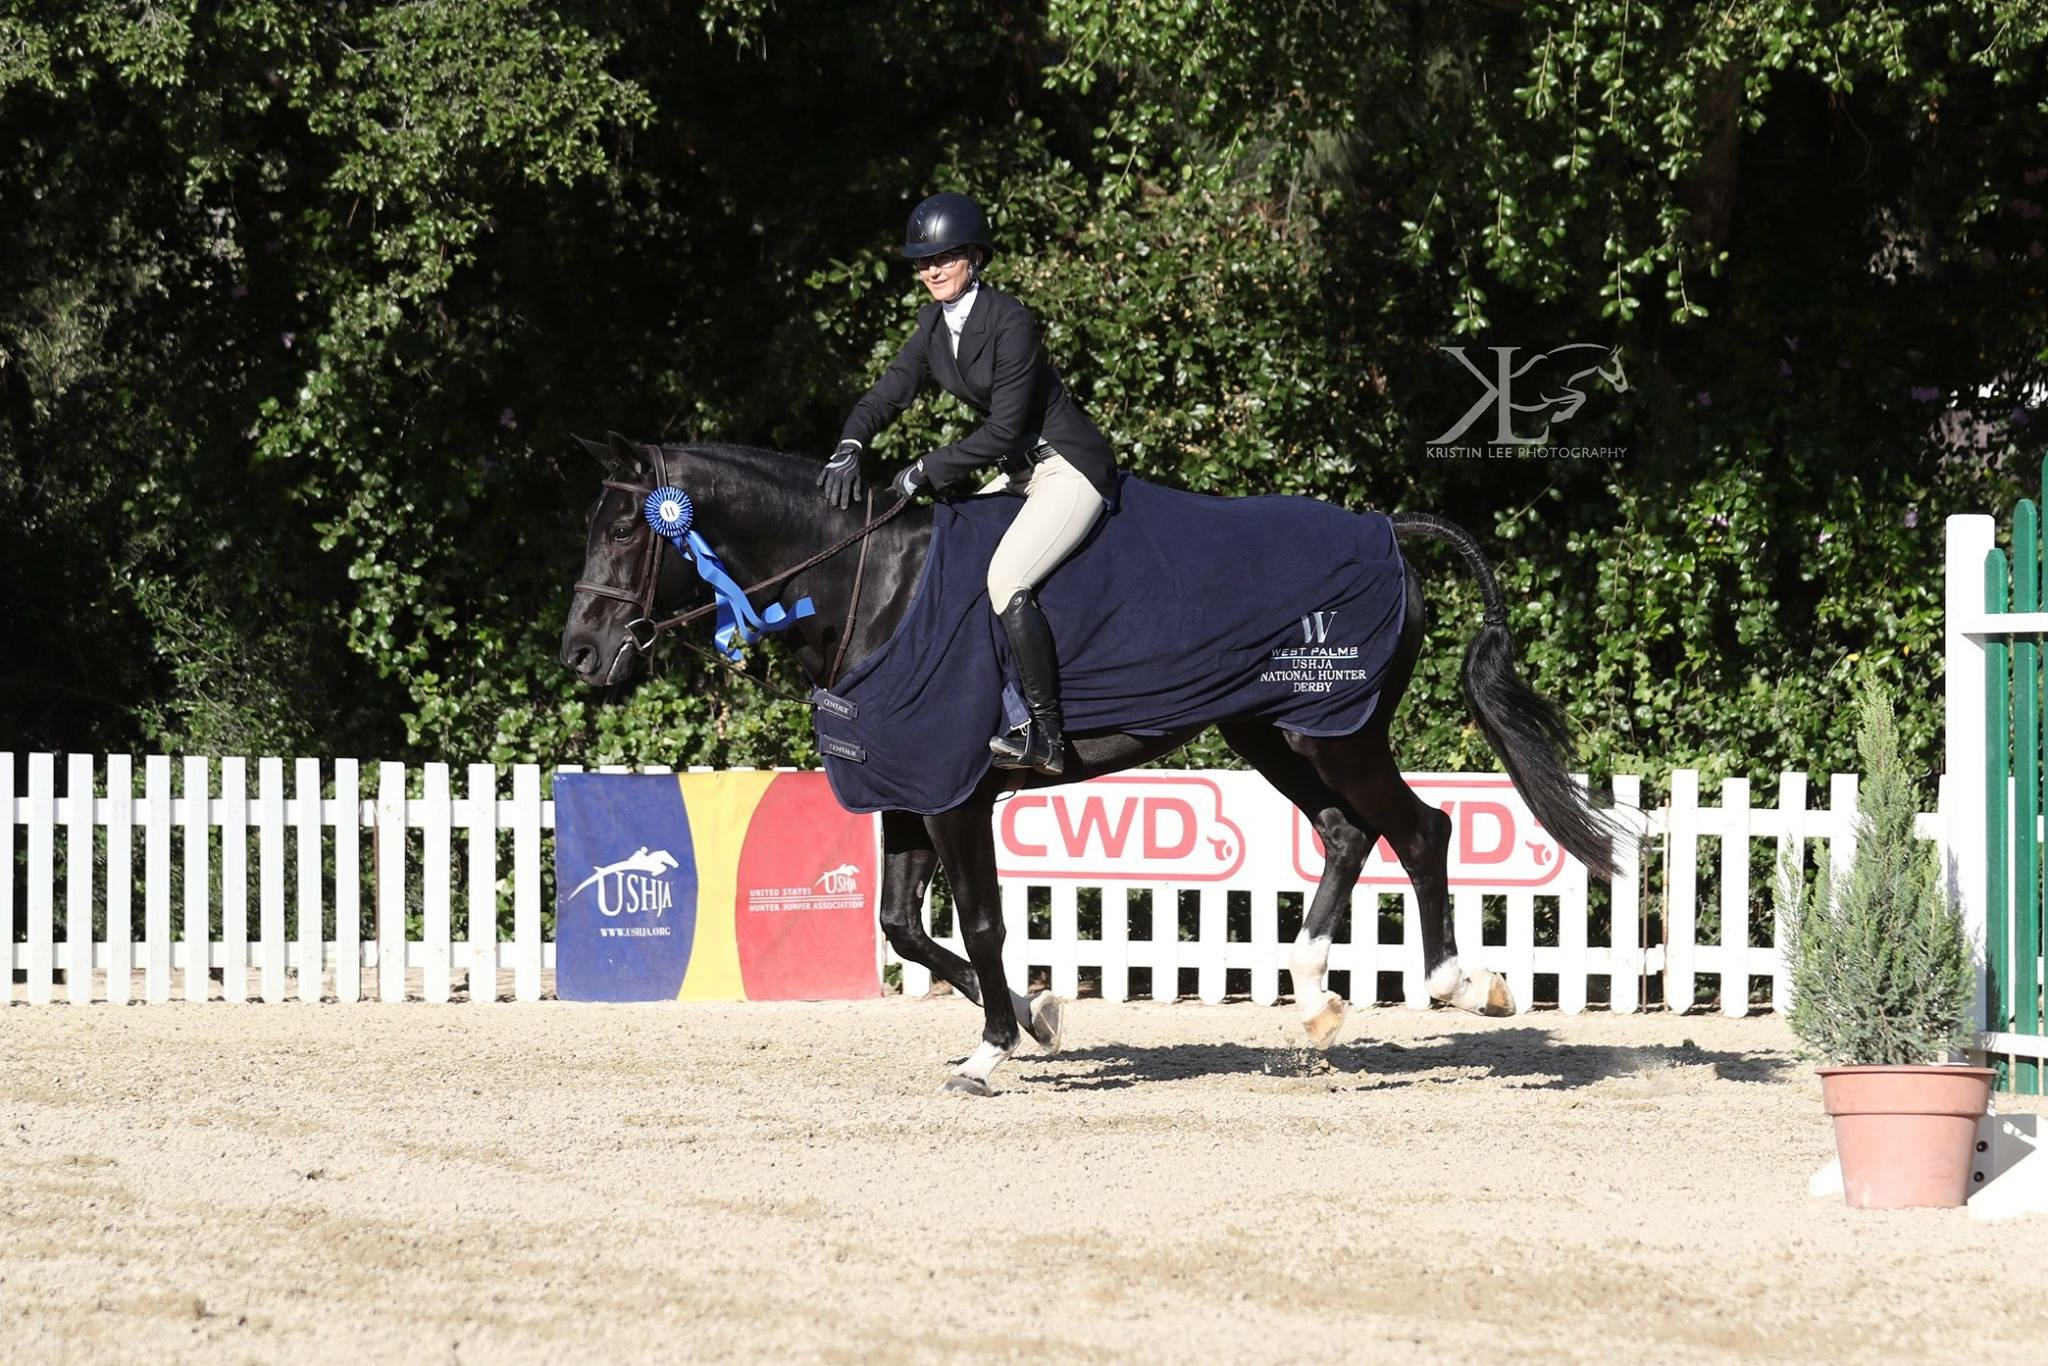 Erin and Black Label winners of the $5000 USHJA National Derby